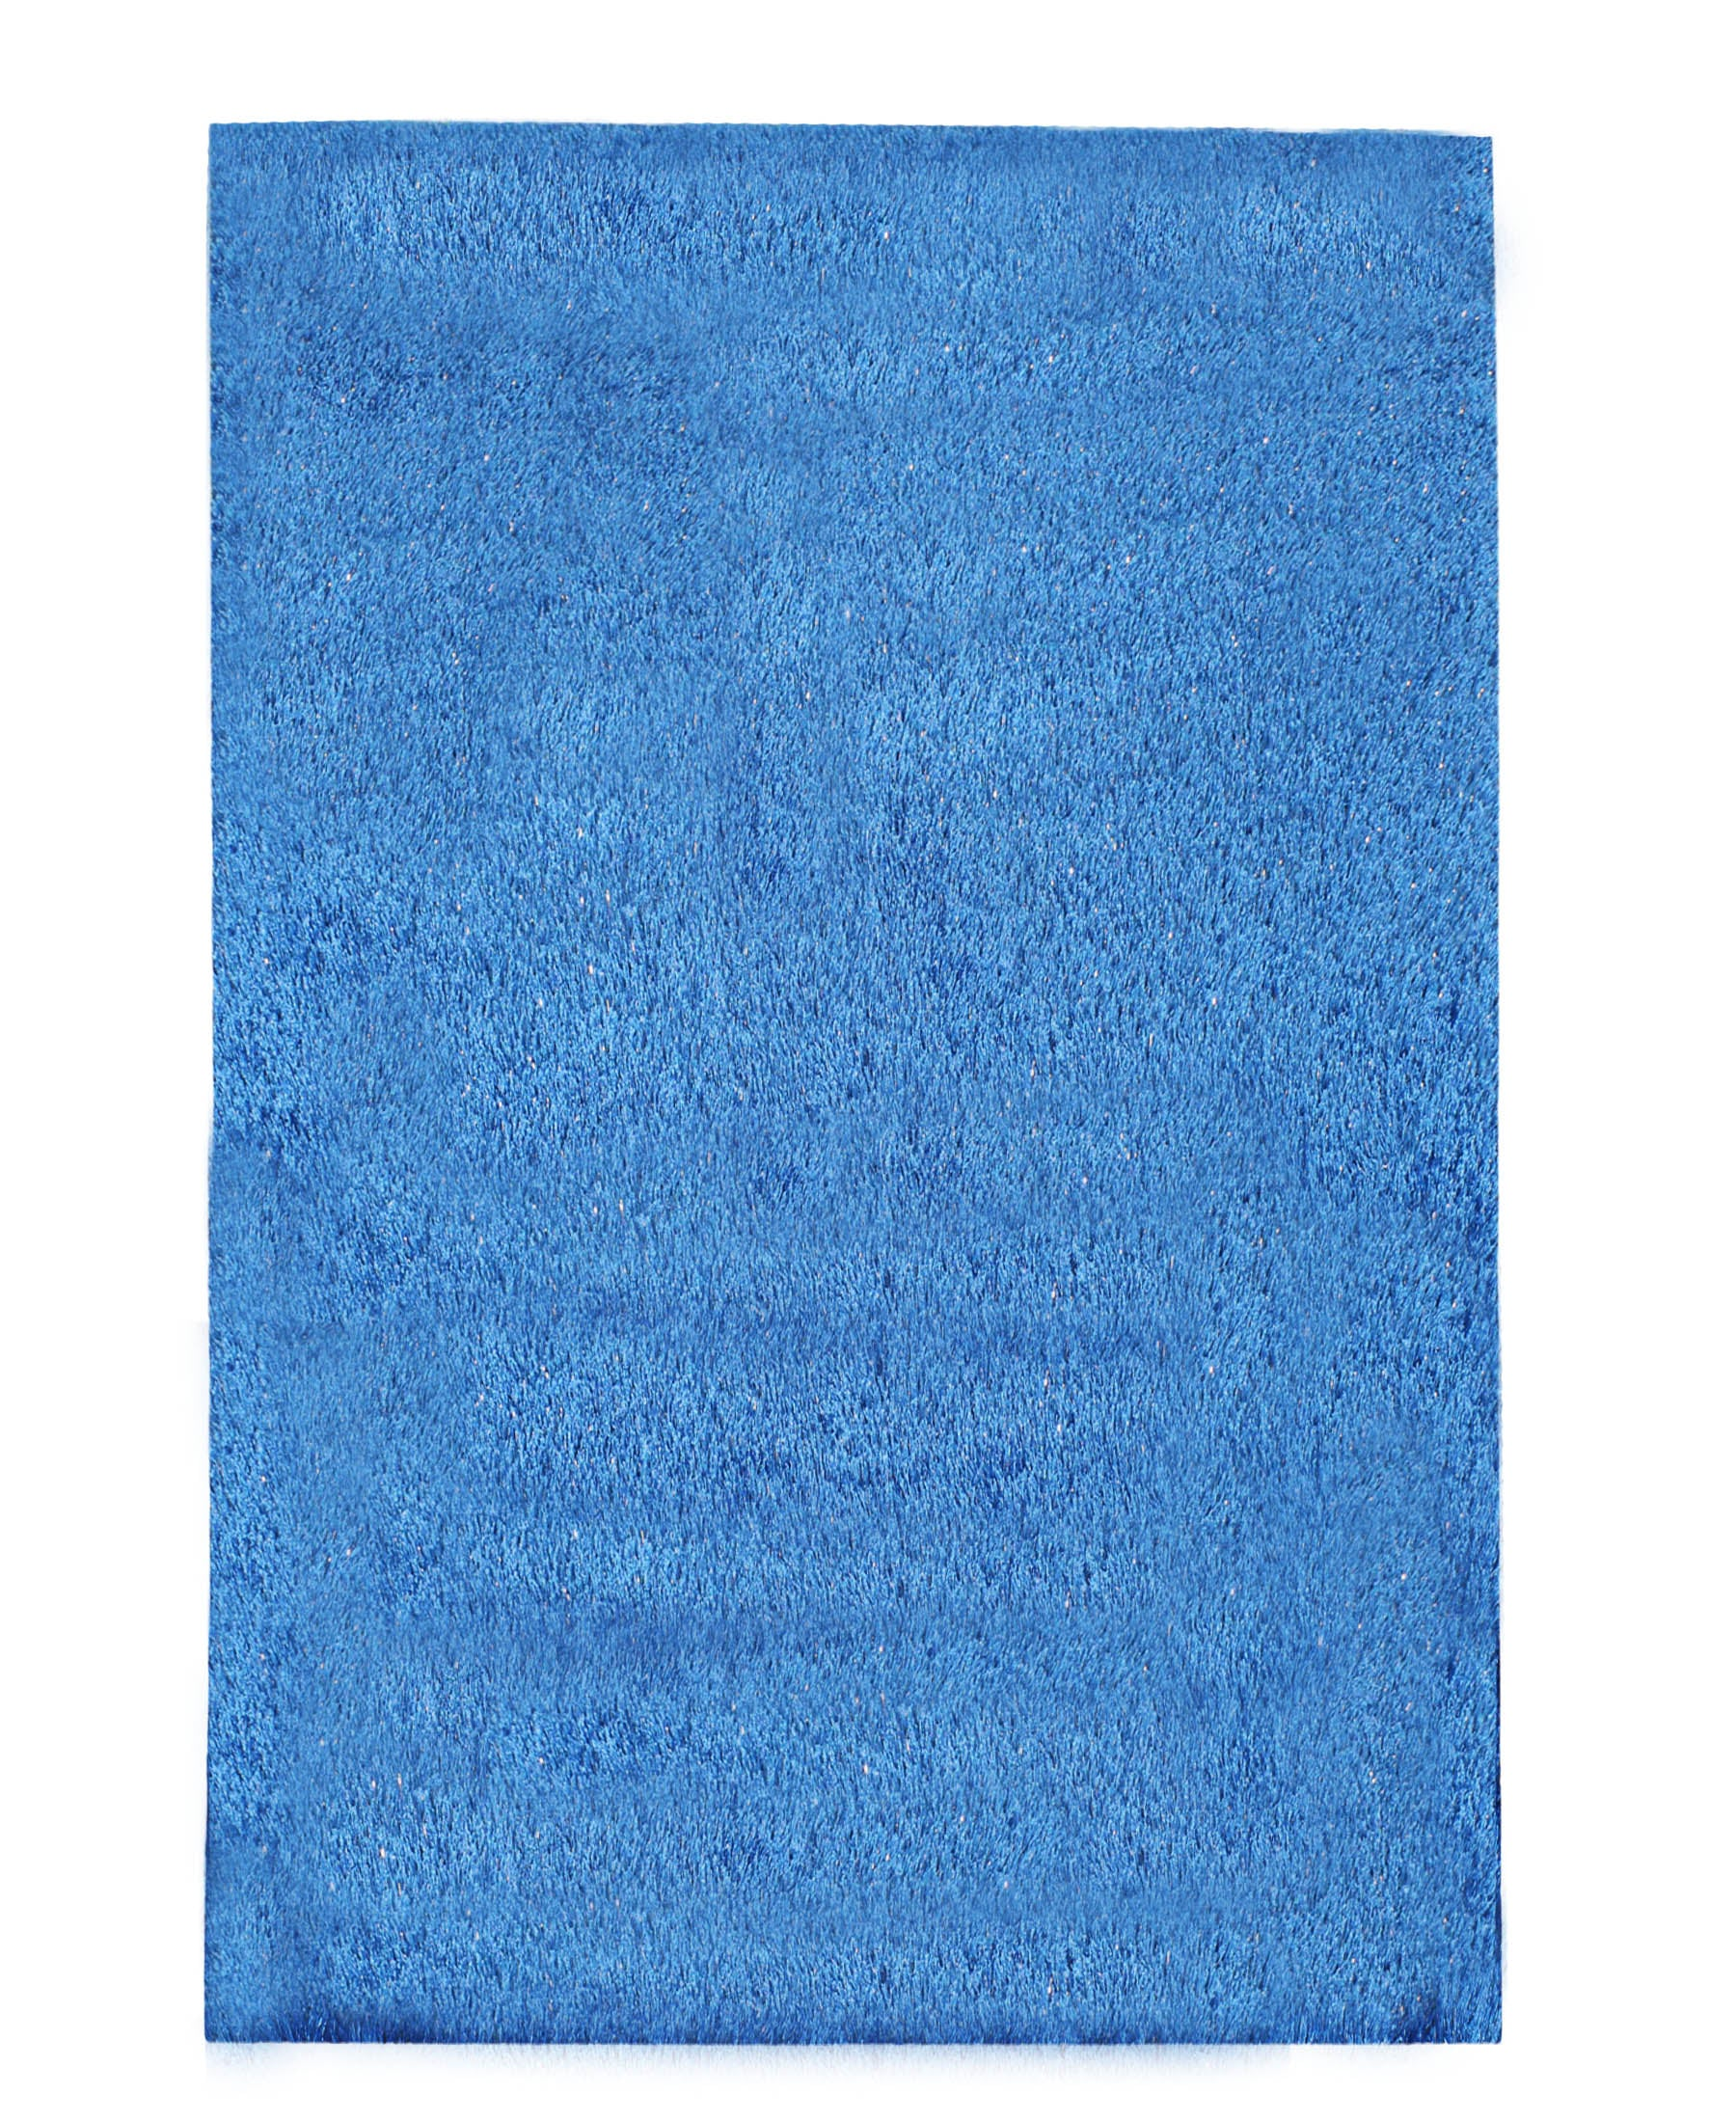 Stefano Sky Blue Carpet 1600mm x 2200mm - Blue